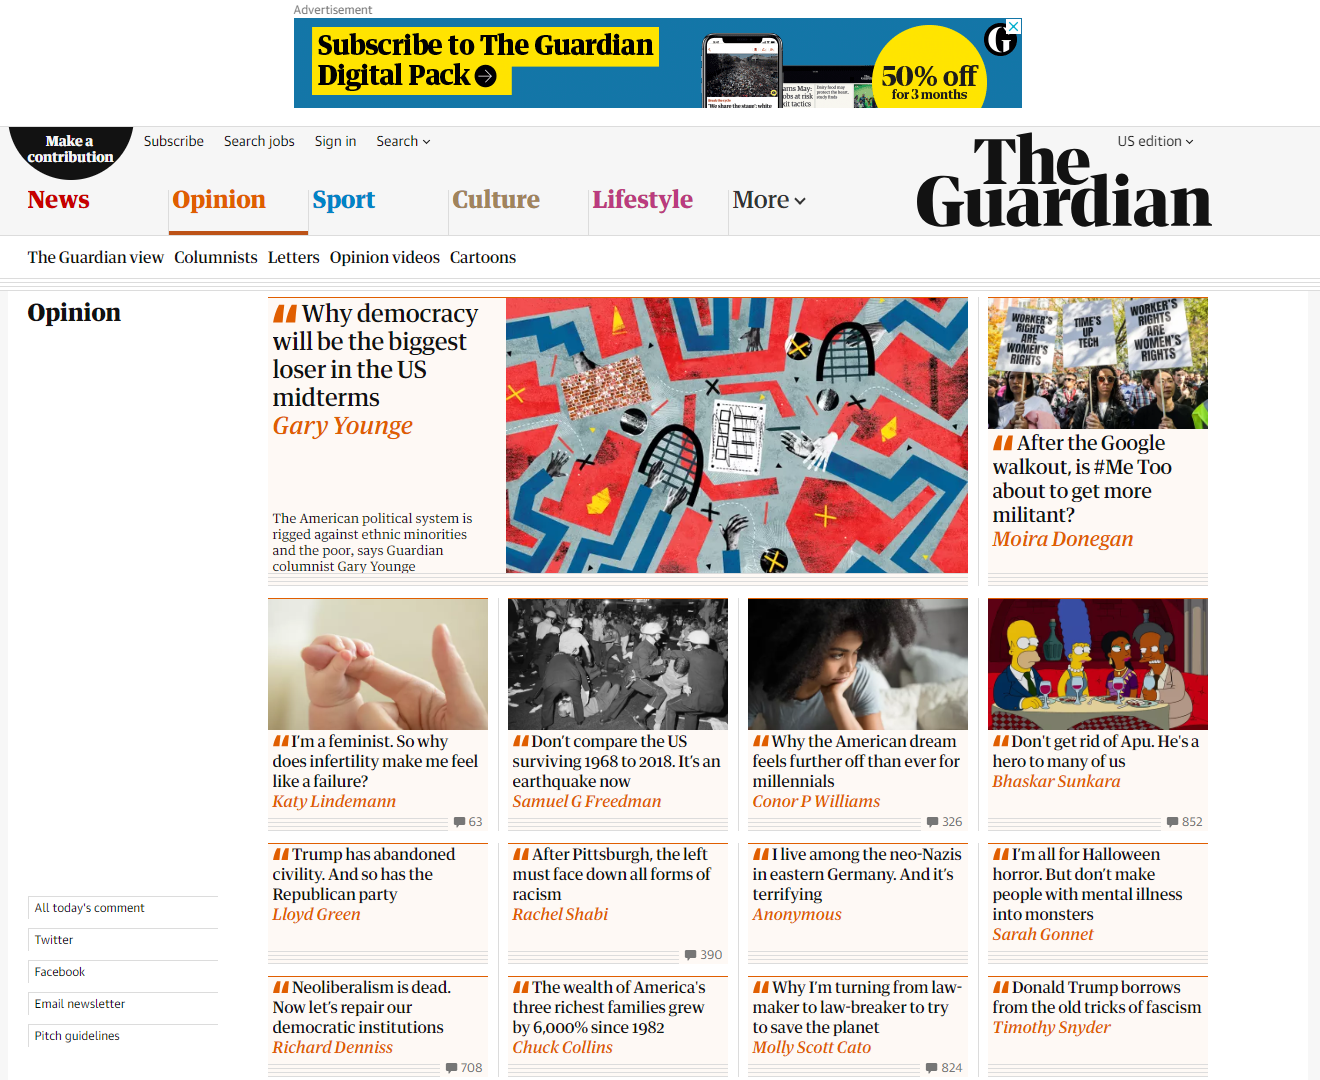 The Guardian screenshot